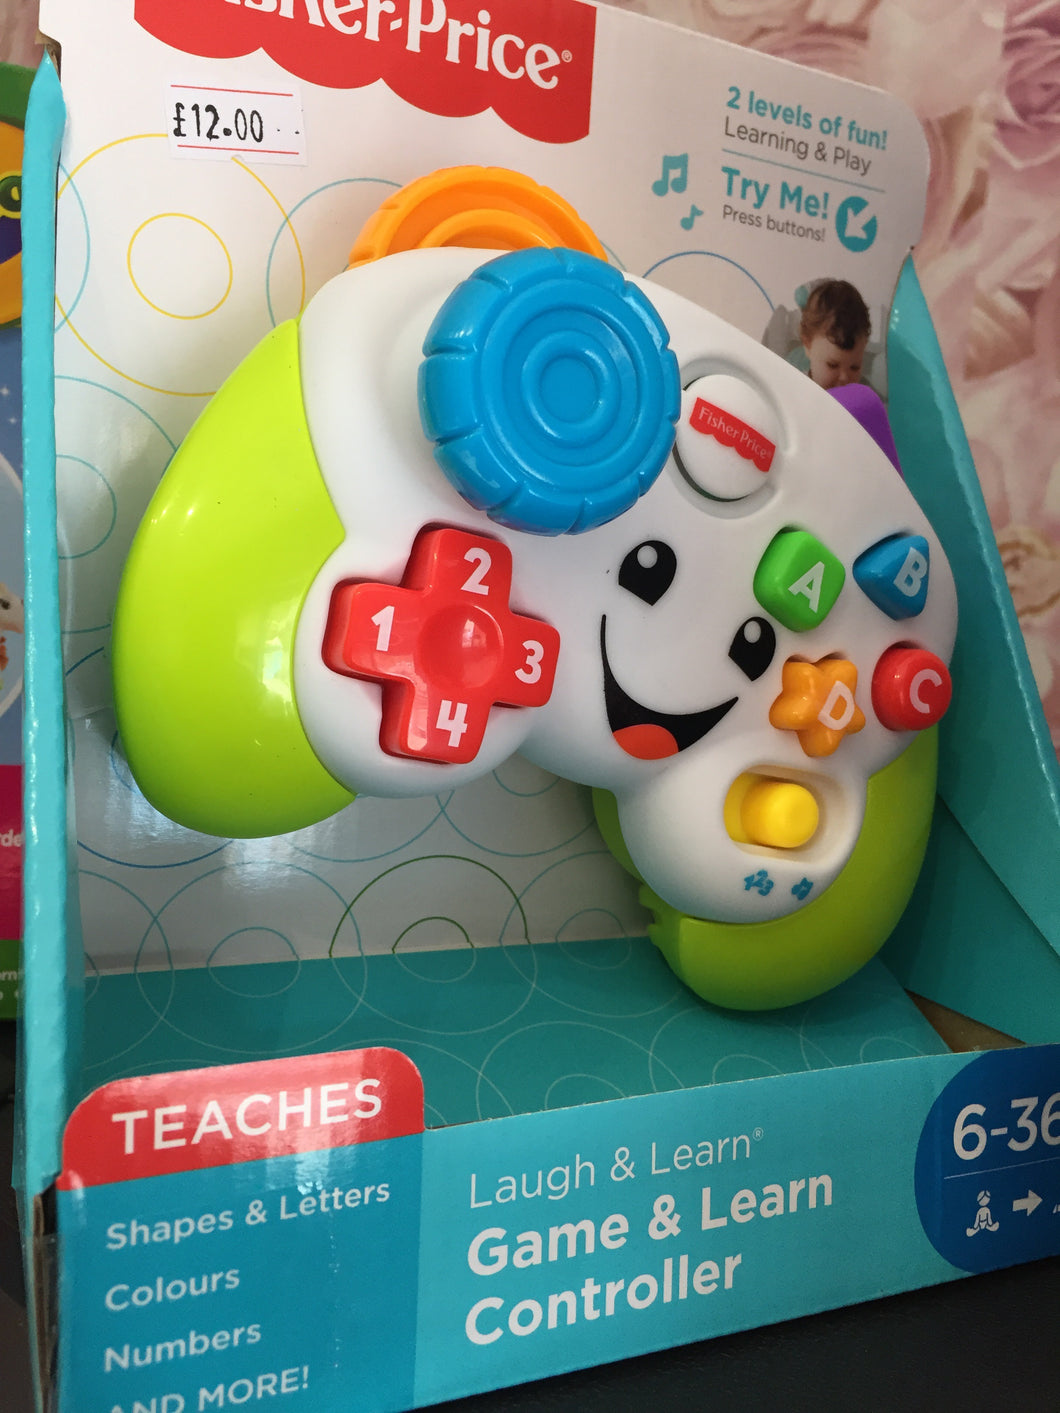 Game & Learn controller - First Class Learning Bradford